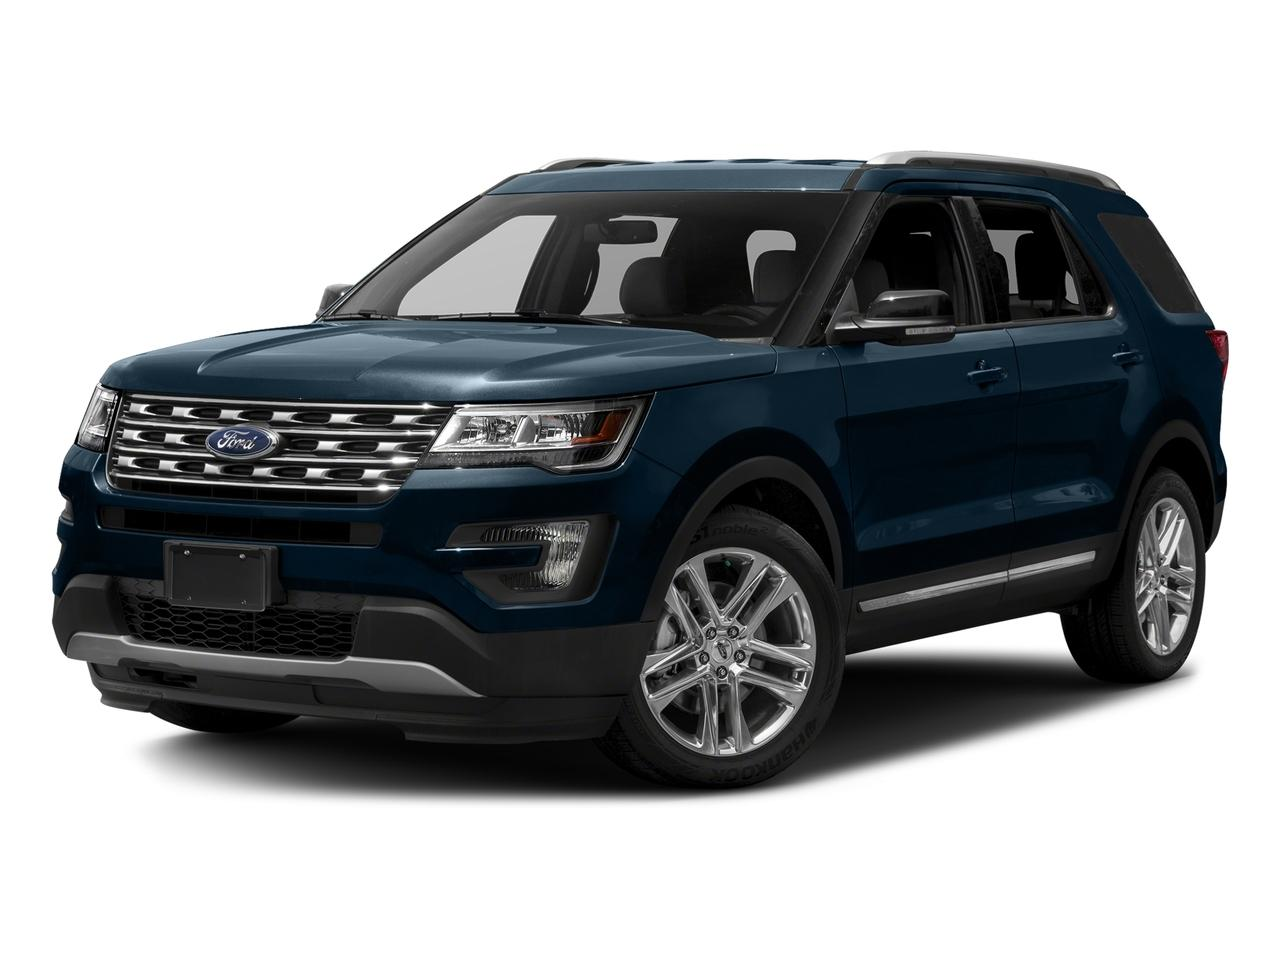 2017 Ford Explorer Vehicle Photo in Brockton, MA 02301